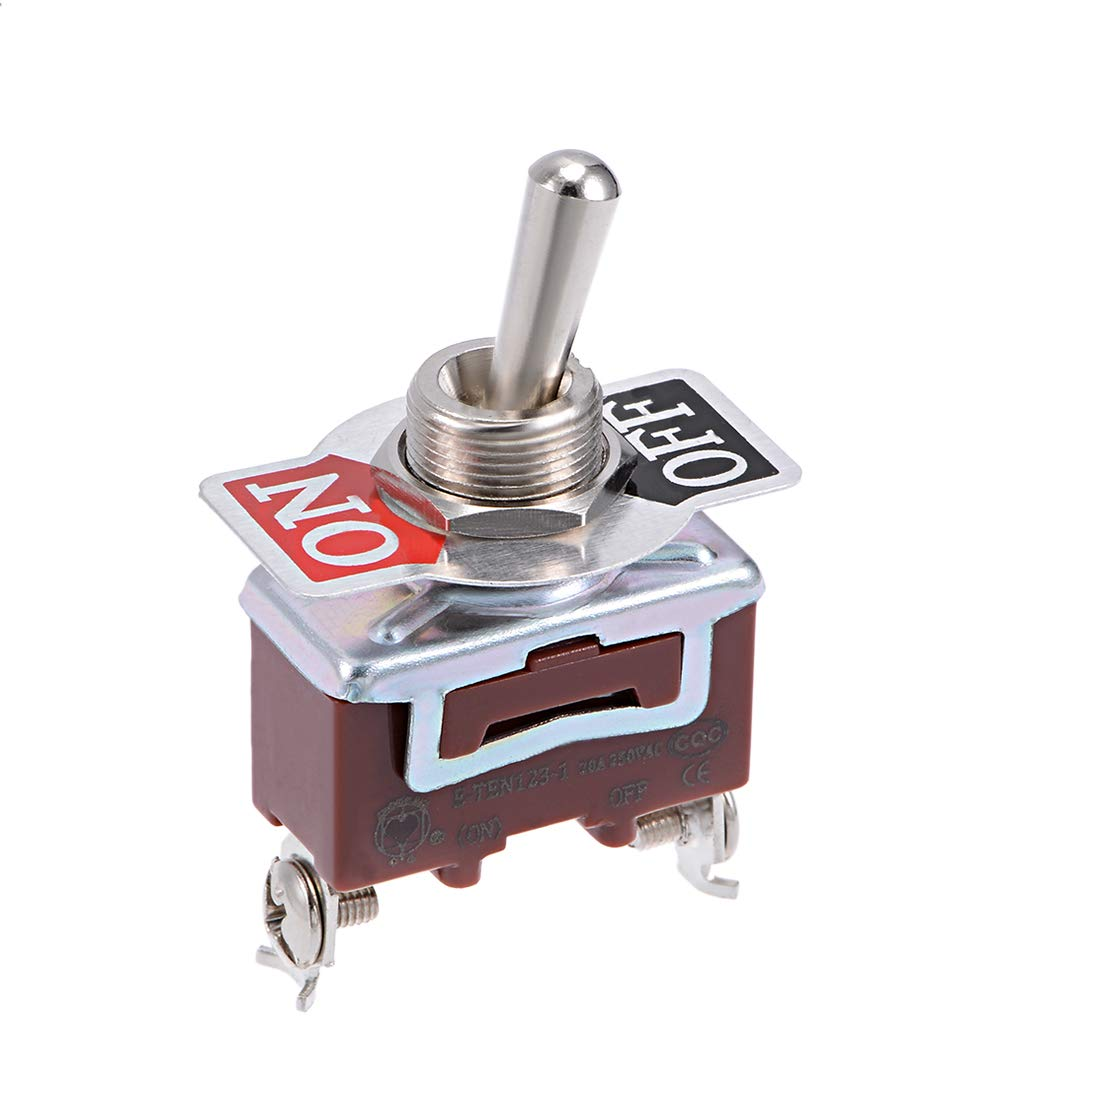 uxcell DPDT Momentary Rocker Toggle Switch Heavy-Duty 20A 250V 6P ON//ON Metal Bat 1pcs